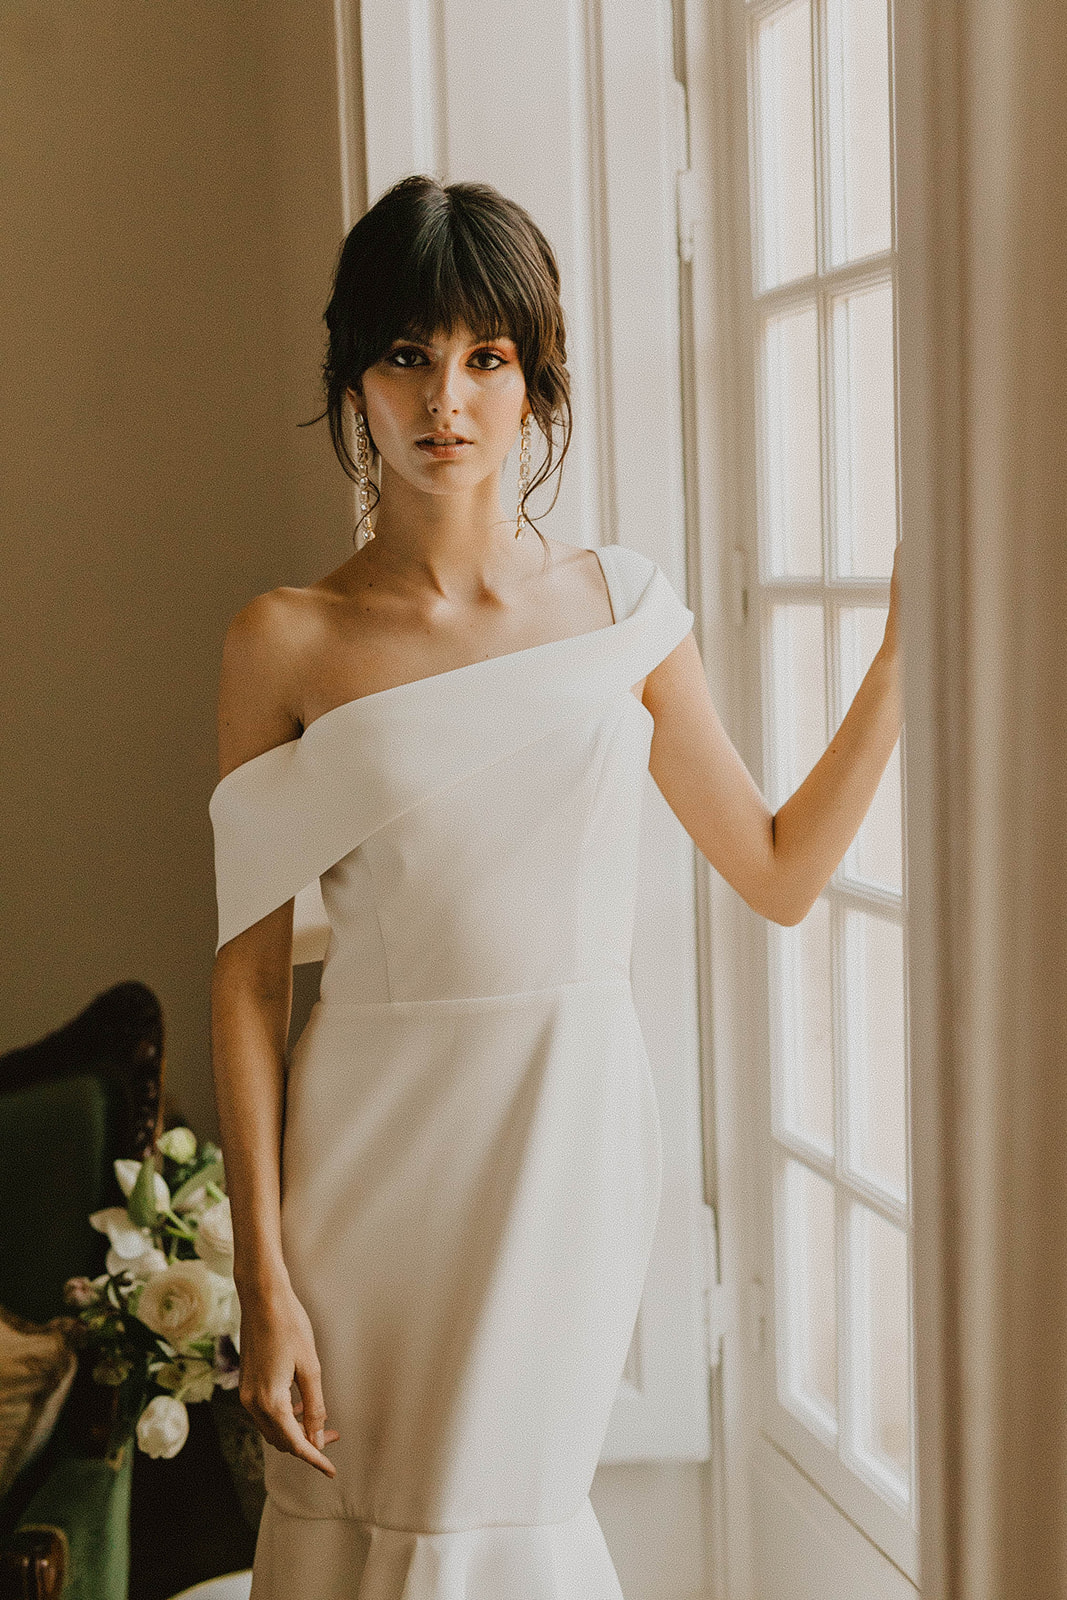 Bridal sessions - $500Designed to accommodate clients that wanted wedding coverage but their date wasn't available.Bridal Prep (Bridal Details, Getting Ready Portraits)1 Hour of Shooting (B&G Portraits)Florals